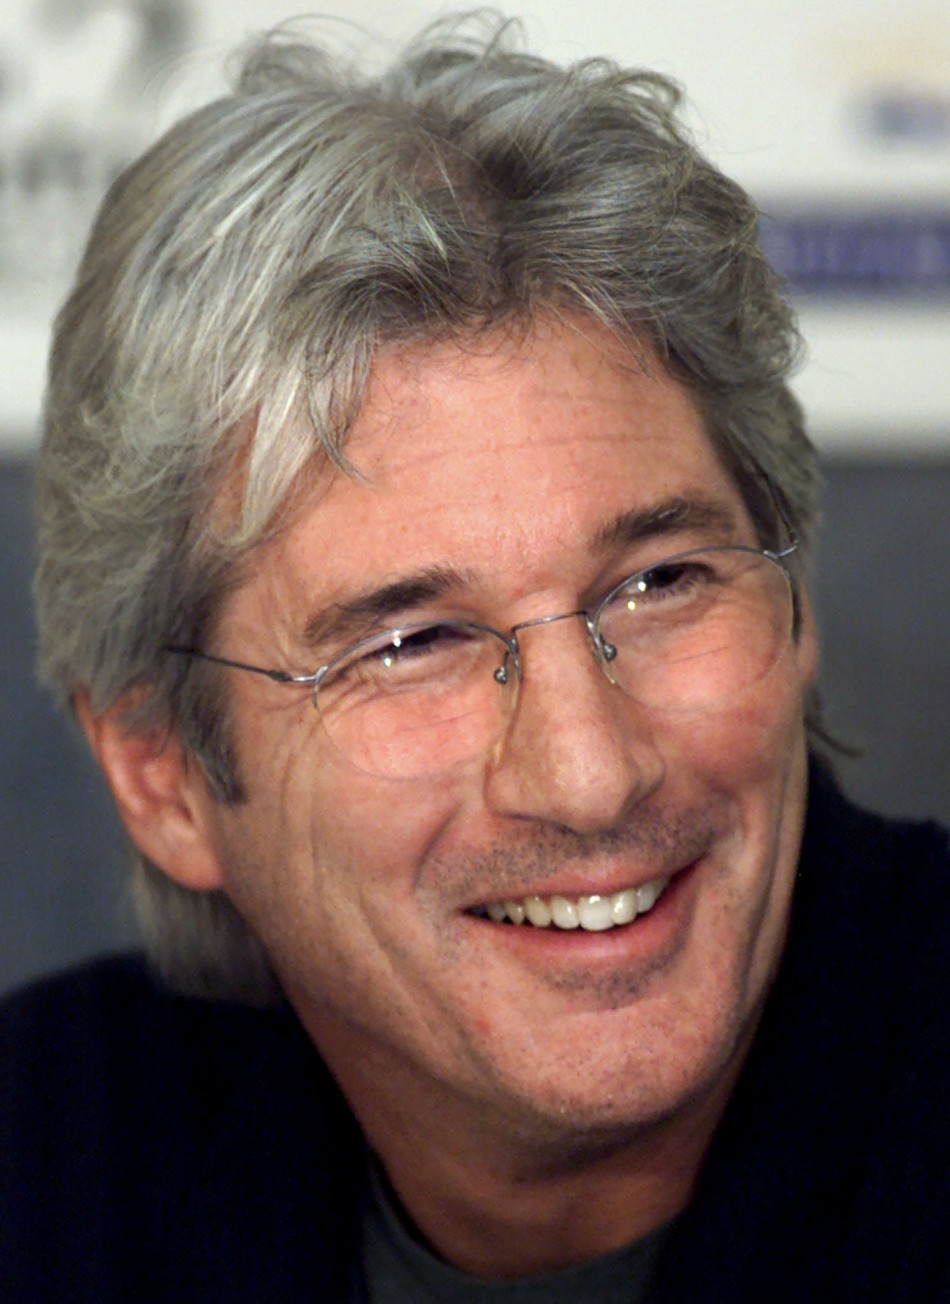 Pictures of Richard Gere   Pictures Of Celebrities 950x1304